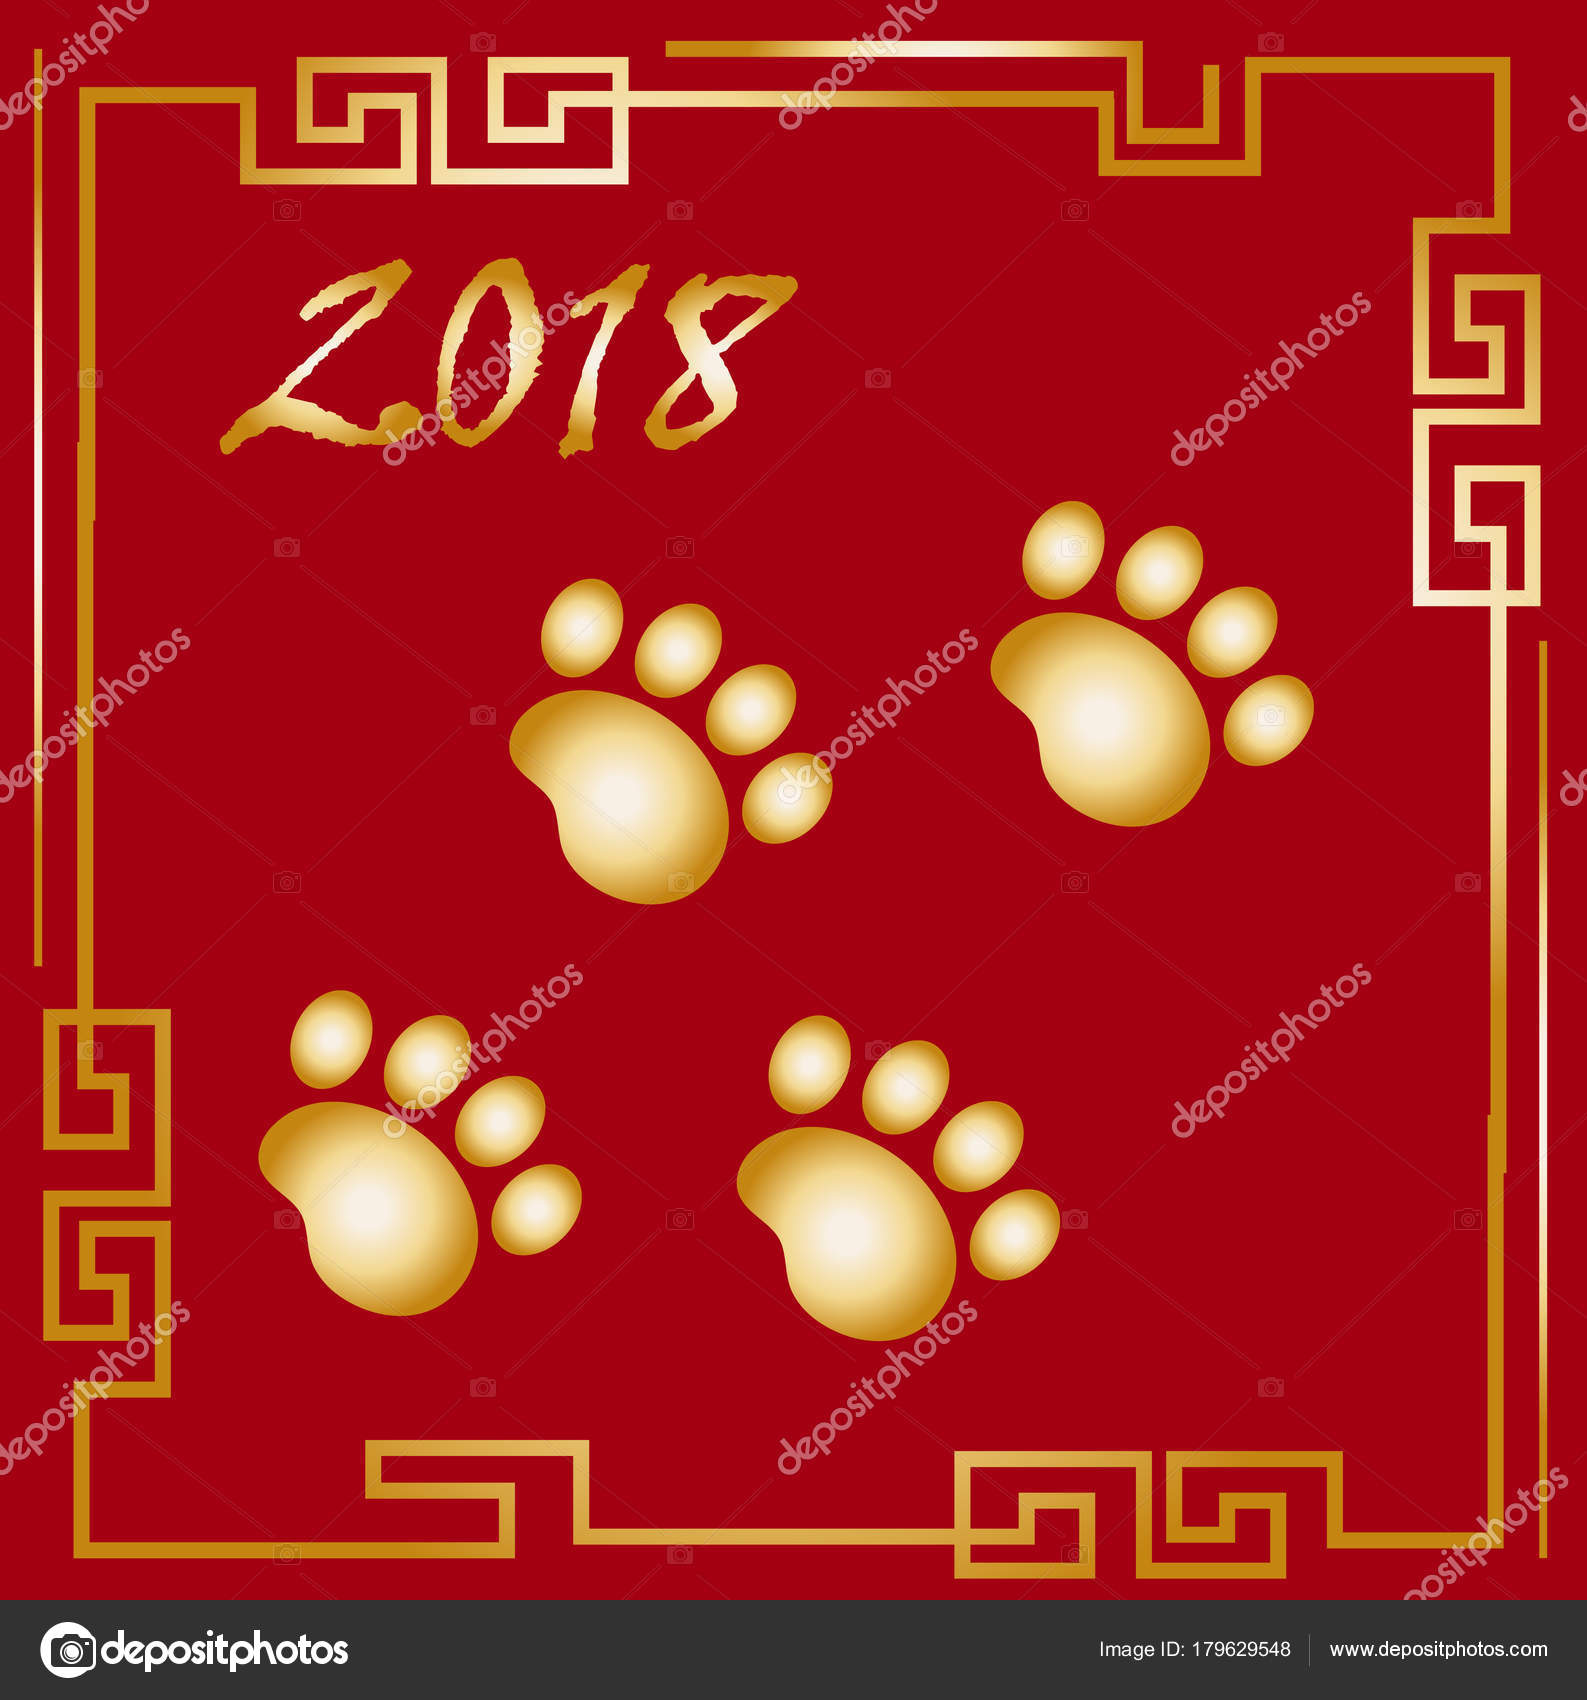 Happy Chinese New Year 2018 Greeting Card With A Dog China New Year